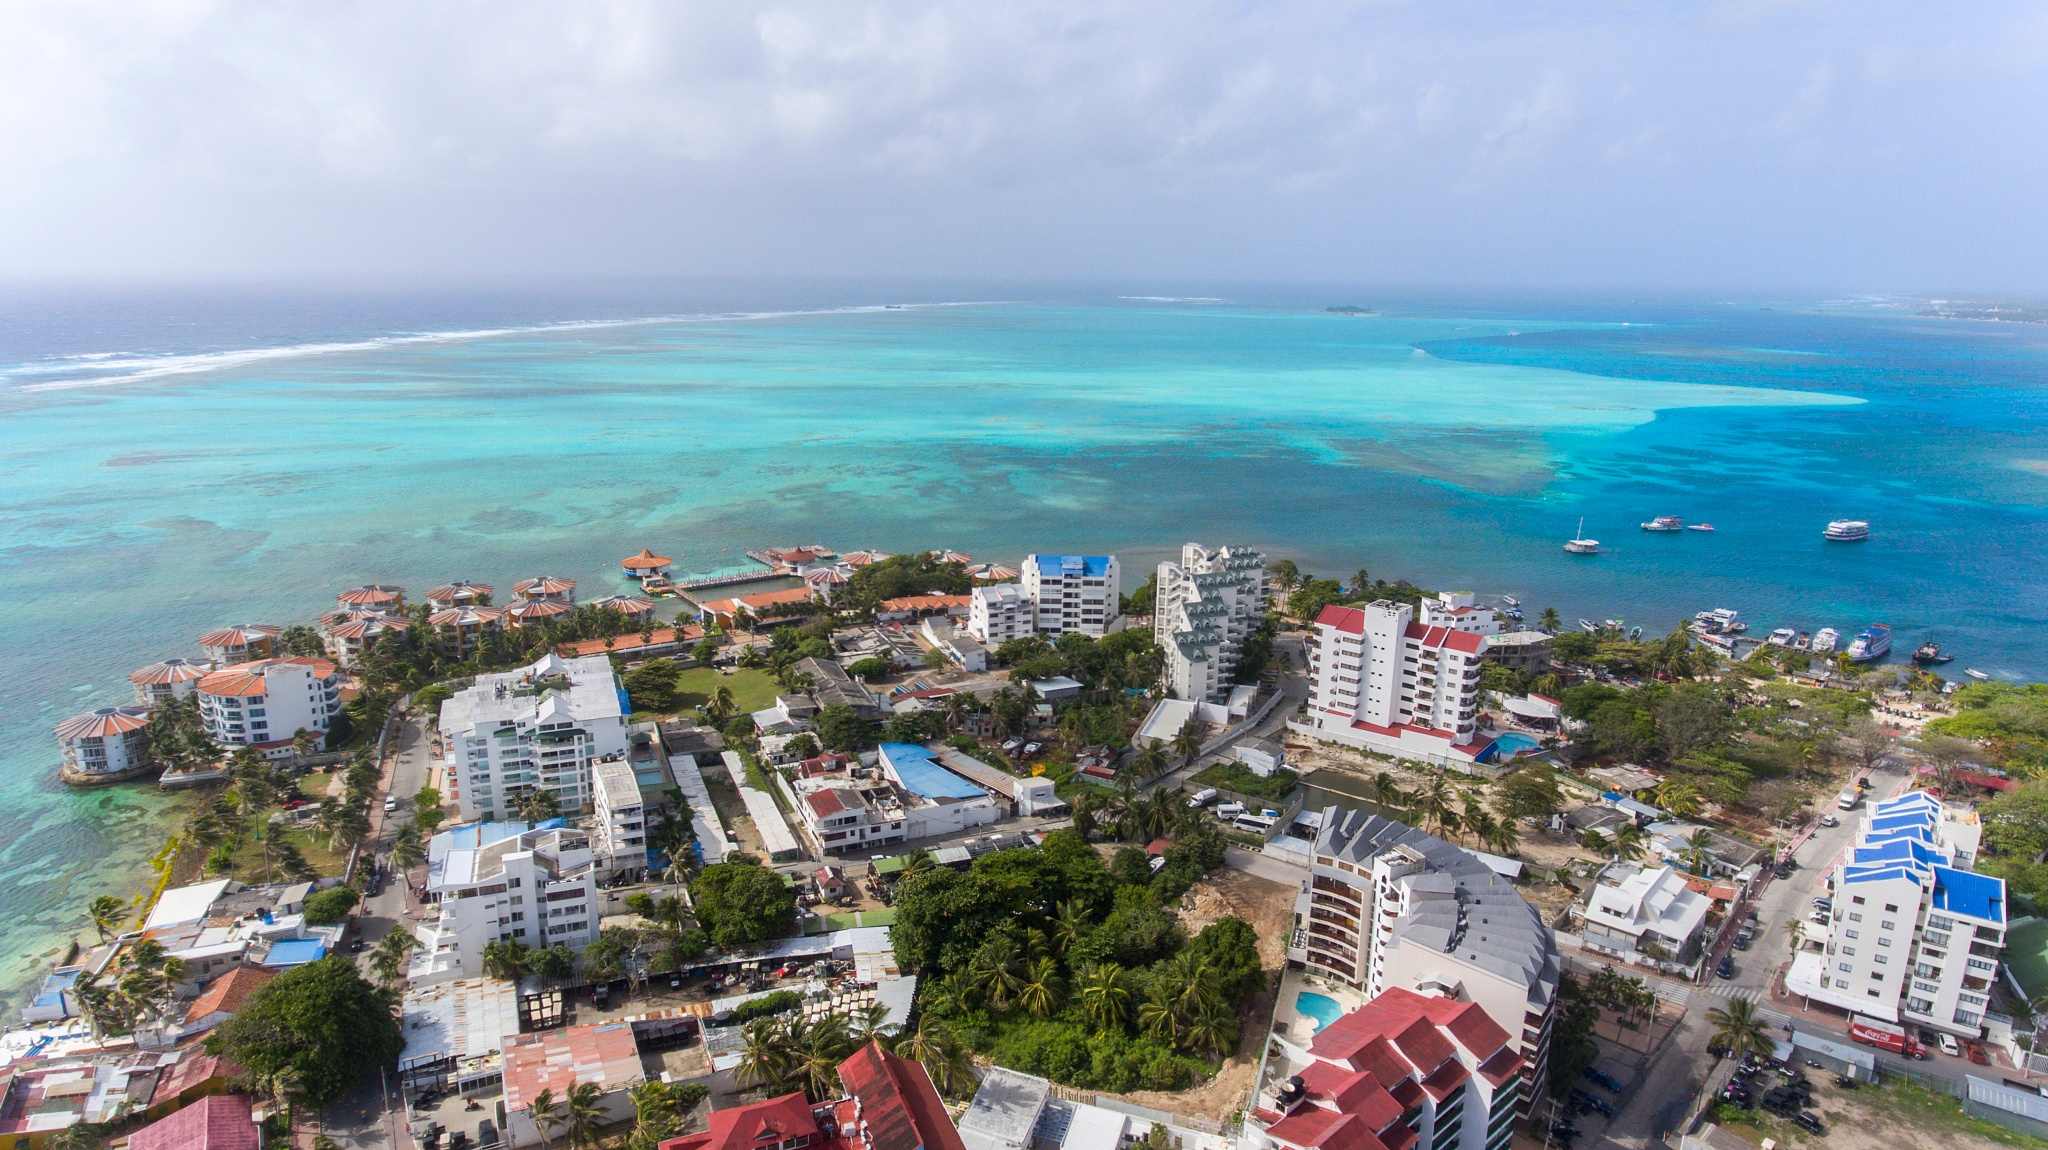 San Andres by @FabianBPhoto